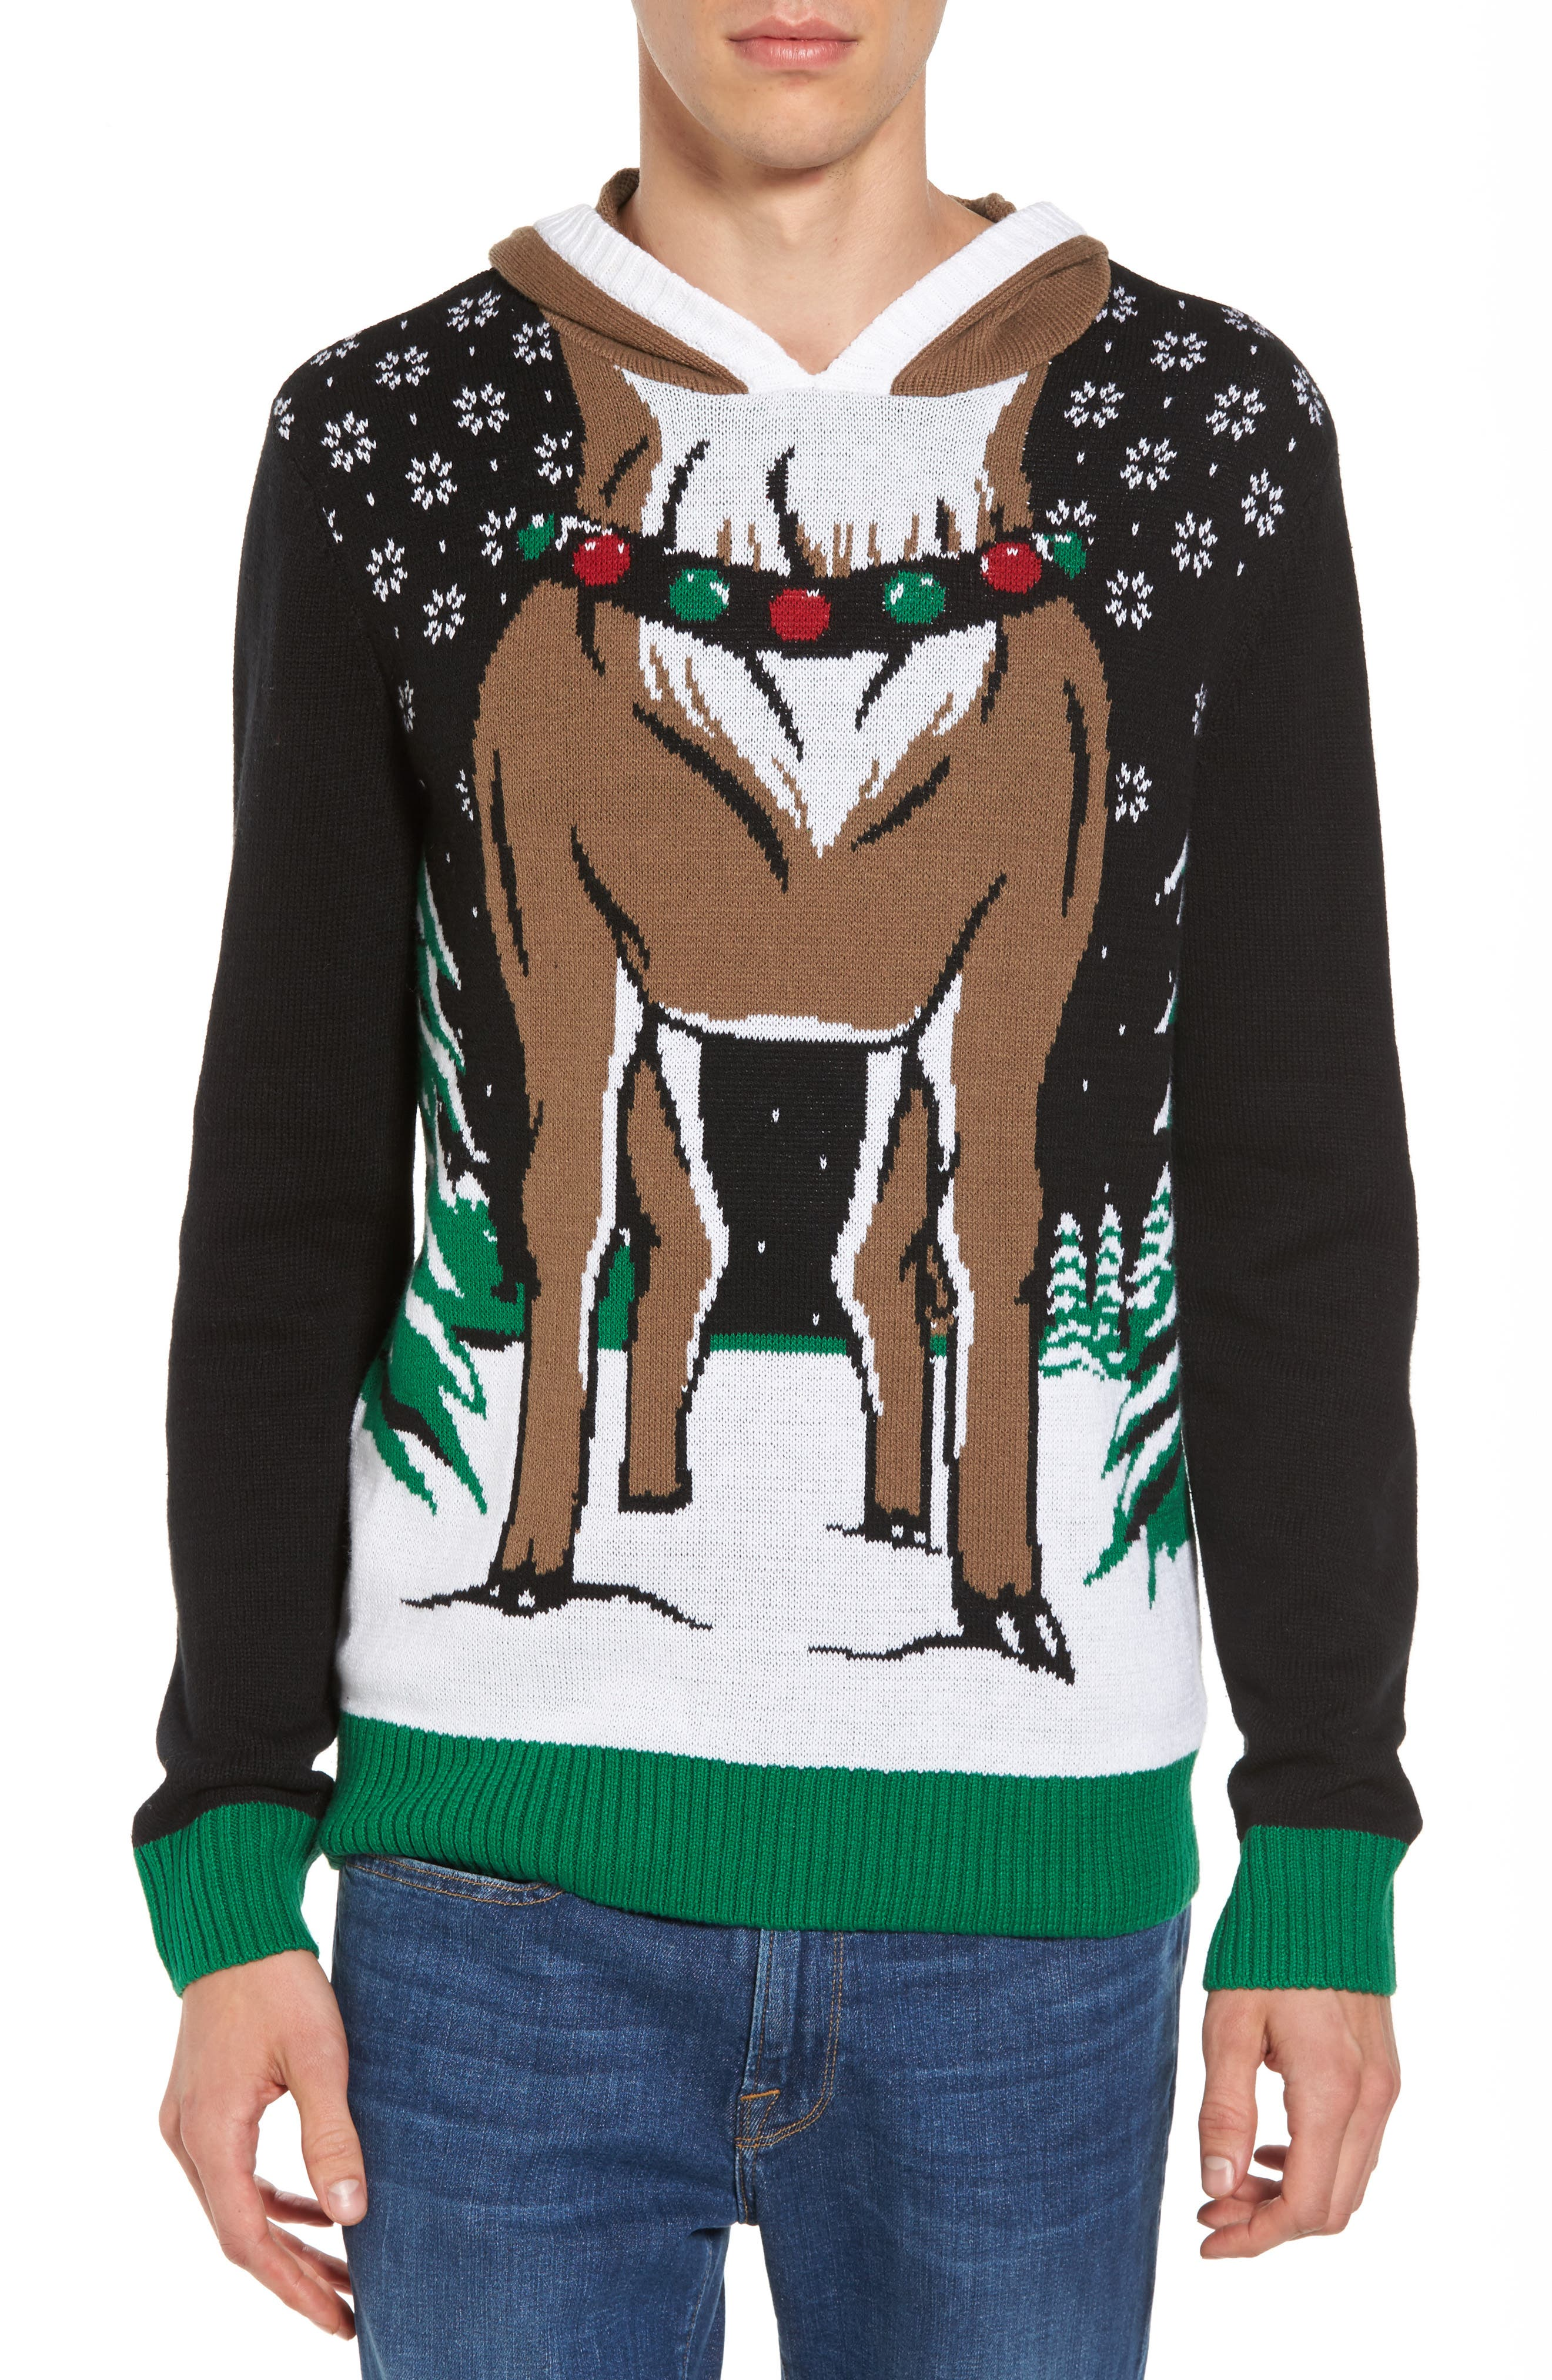 Reindeer Hooded Sweater,                             Main thumbnail 1, color,                             001